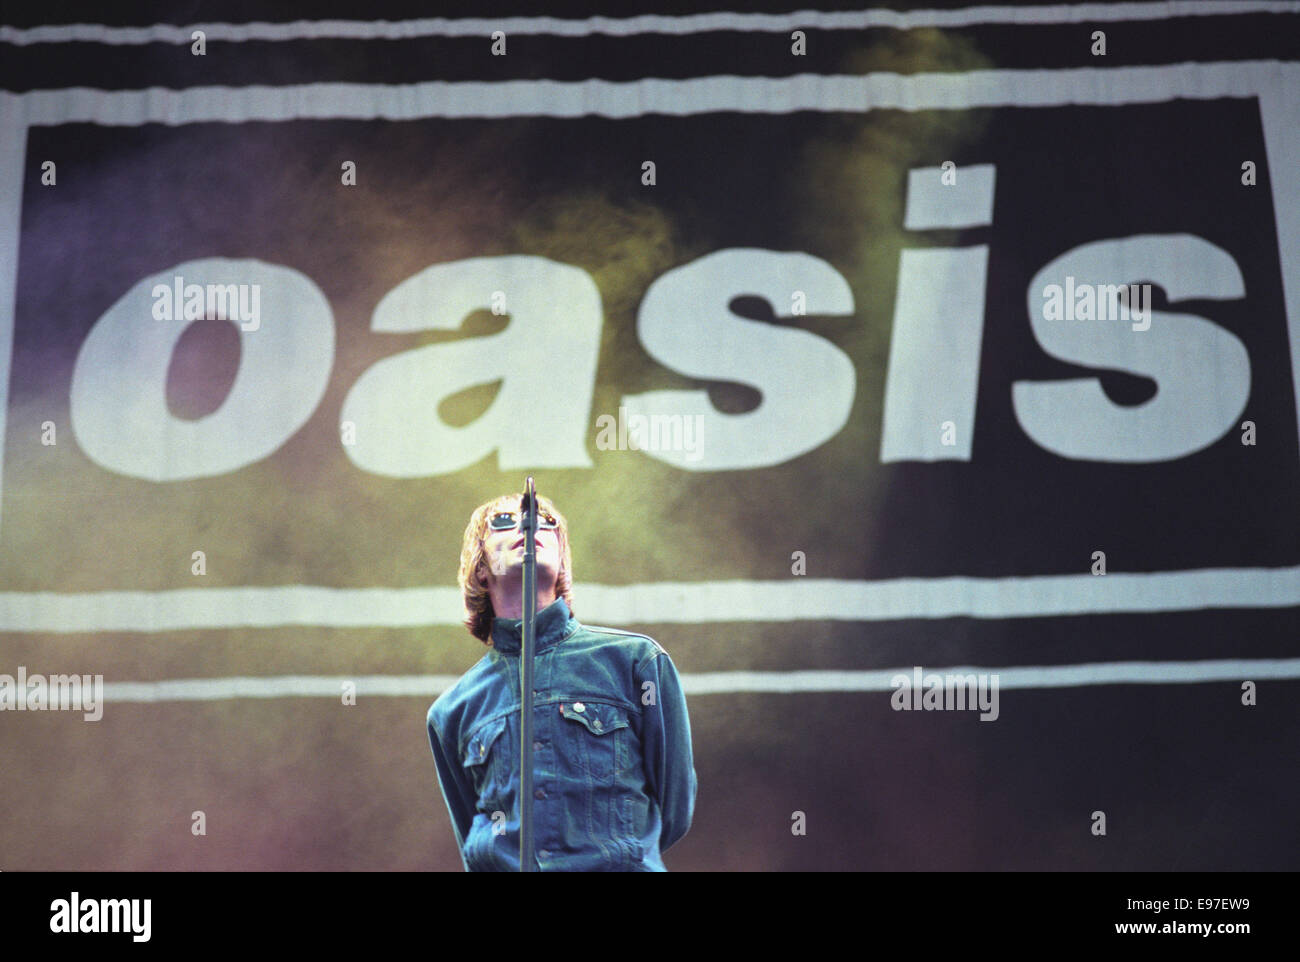 Liam Gallagher/ Oasis in concert at Loch Lomond, Scotland, in 1996. - Stock Image